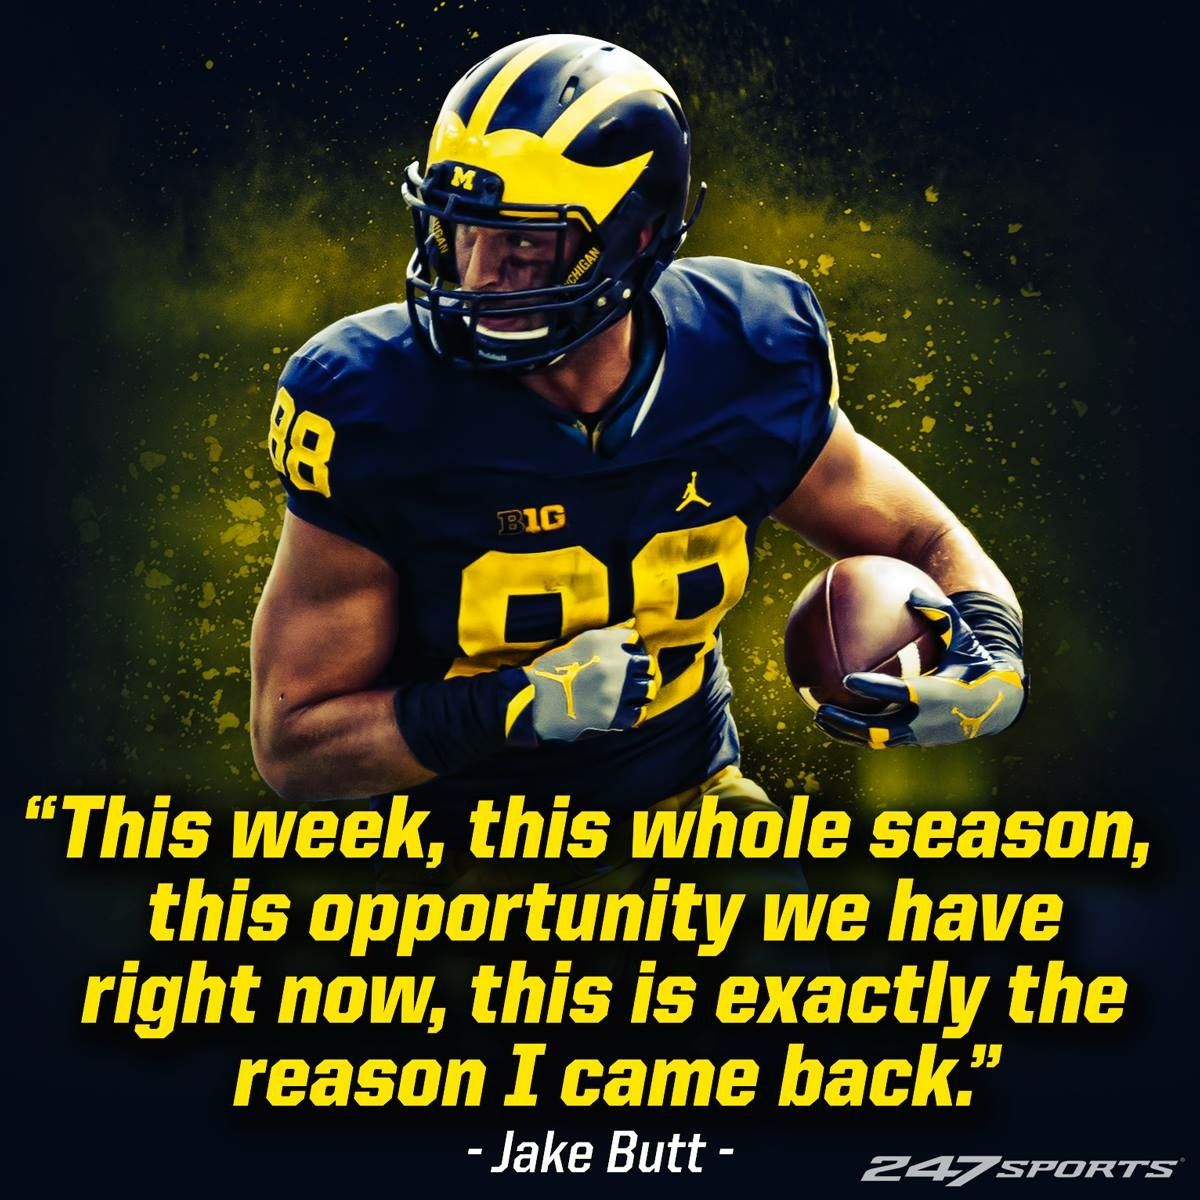 Pin by Jim Gibson on Michigan Wolverines Michigan sports